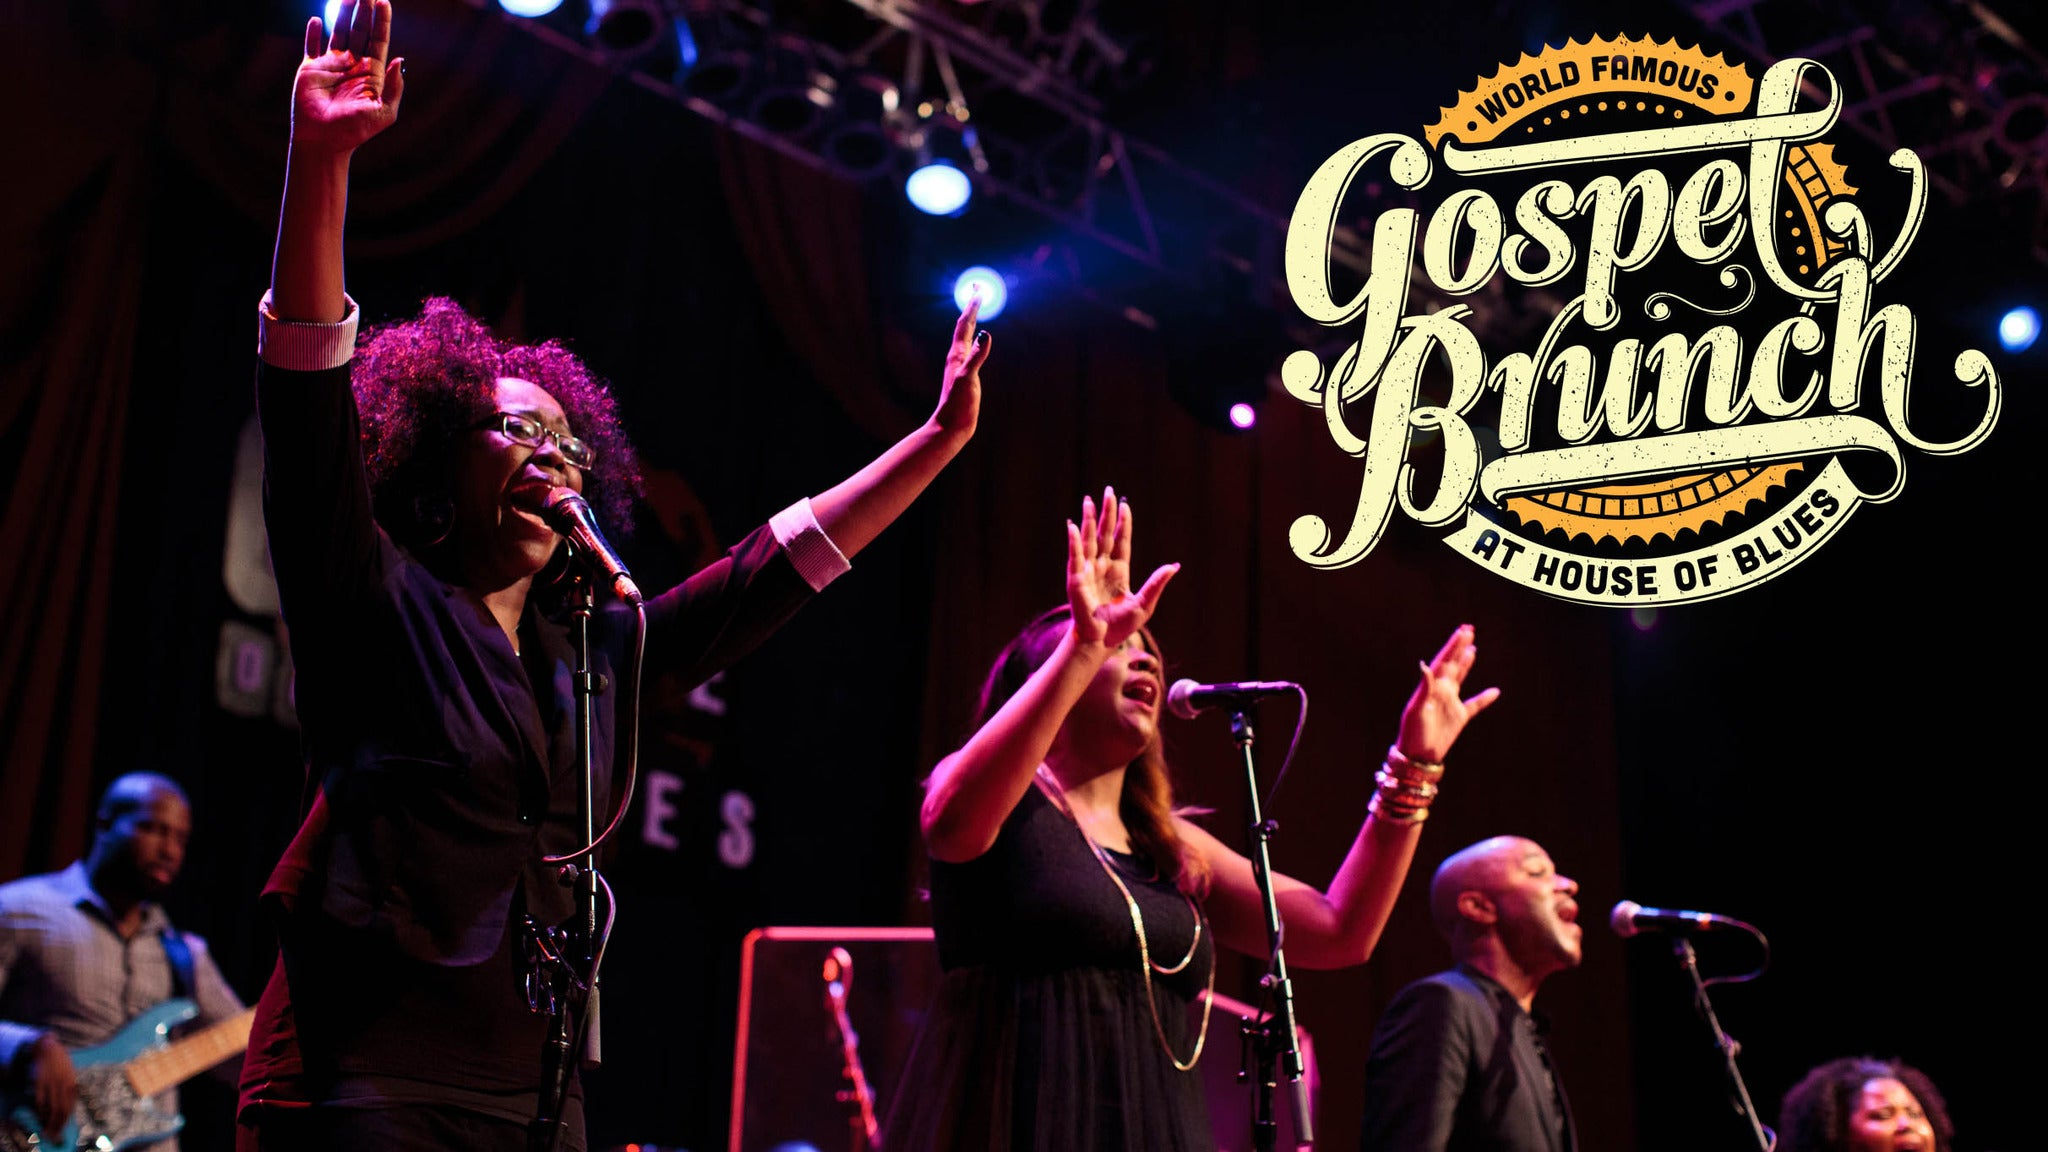 World Famous Gospel Brunch at House of Blues (CHI)